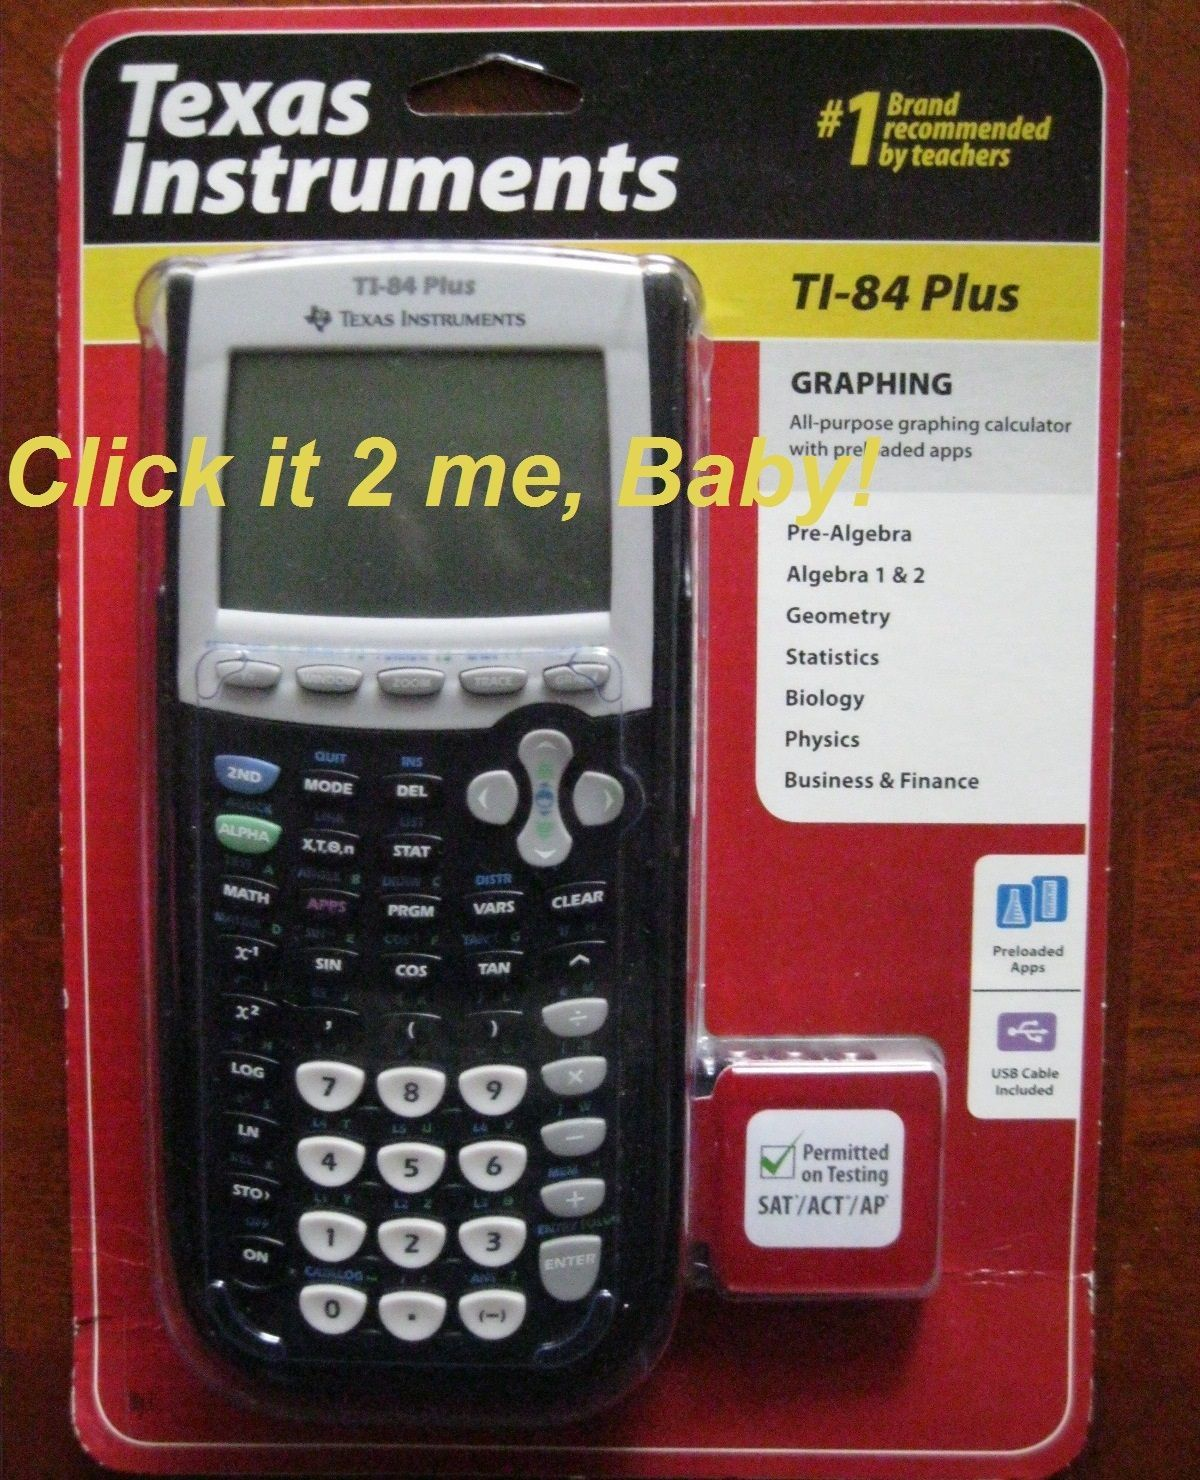 Ti-84 Plus LATEST Model Texas Instruments Graphing